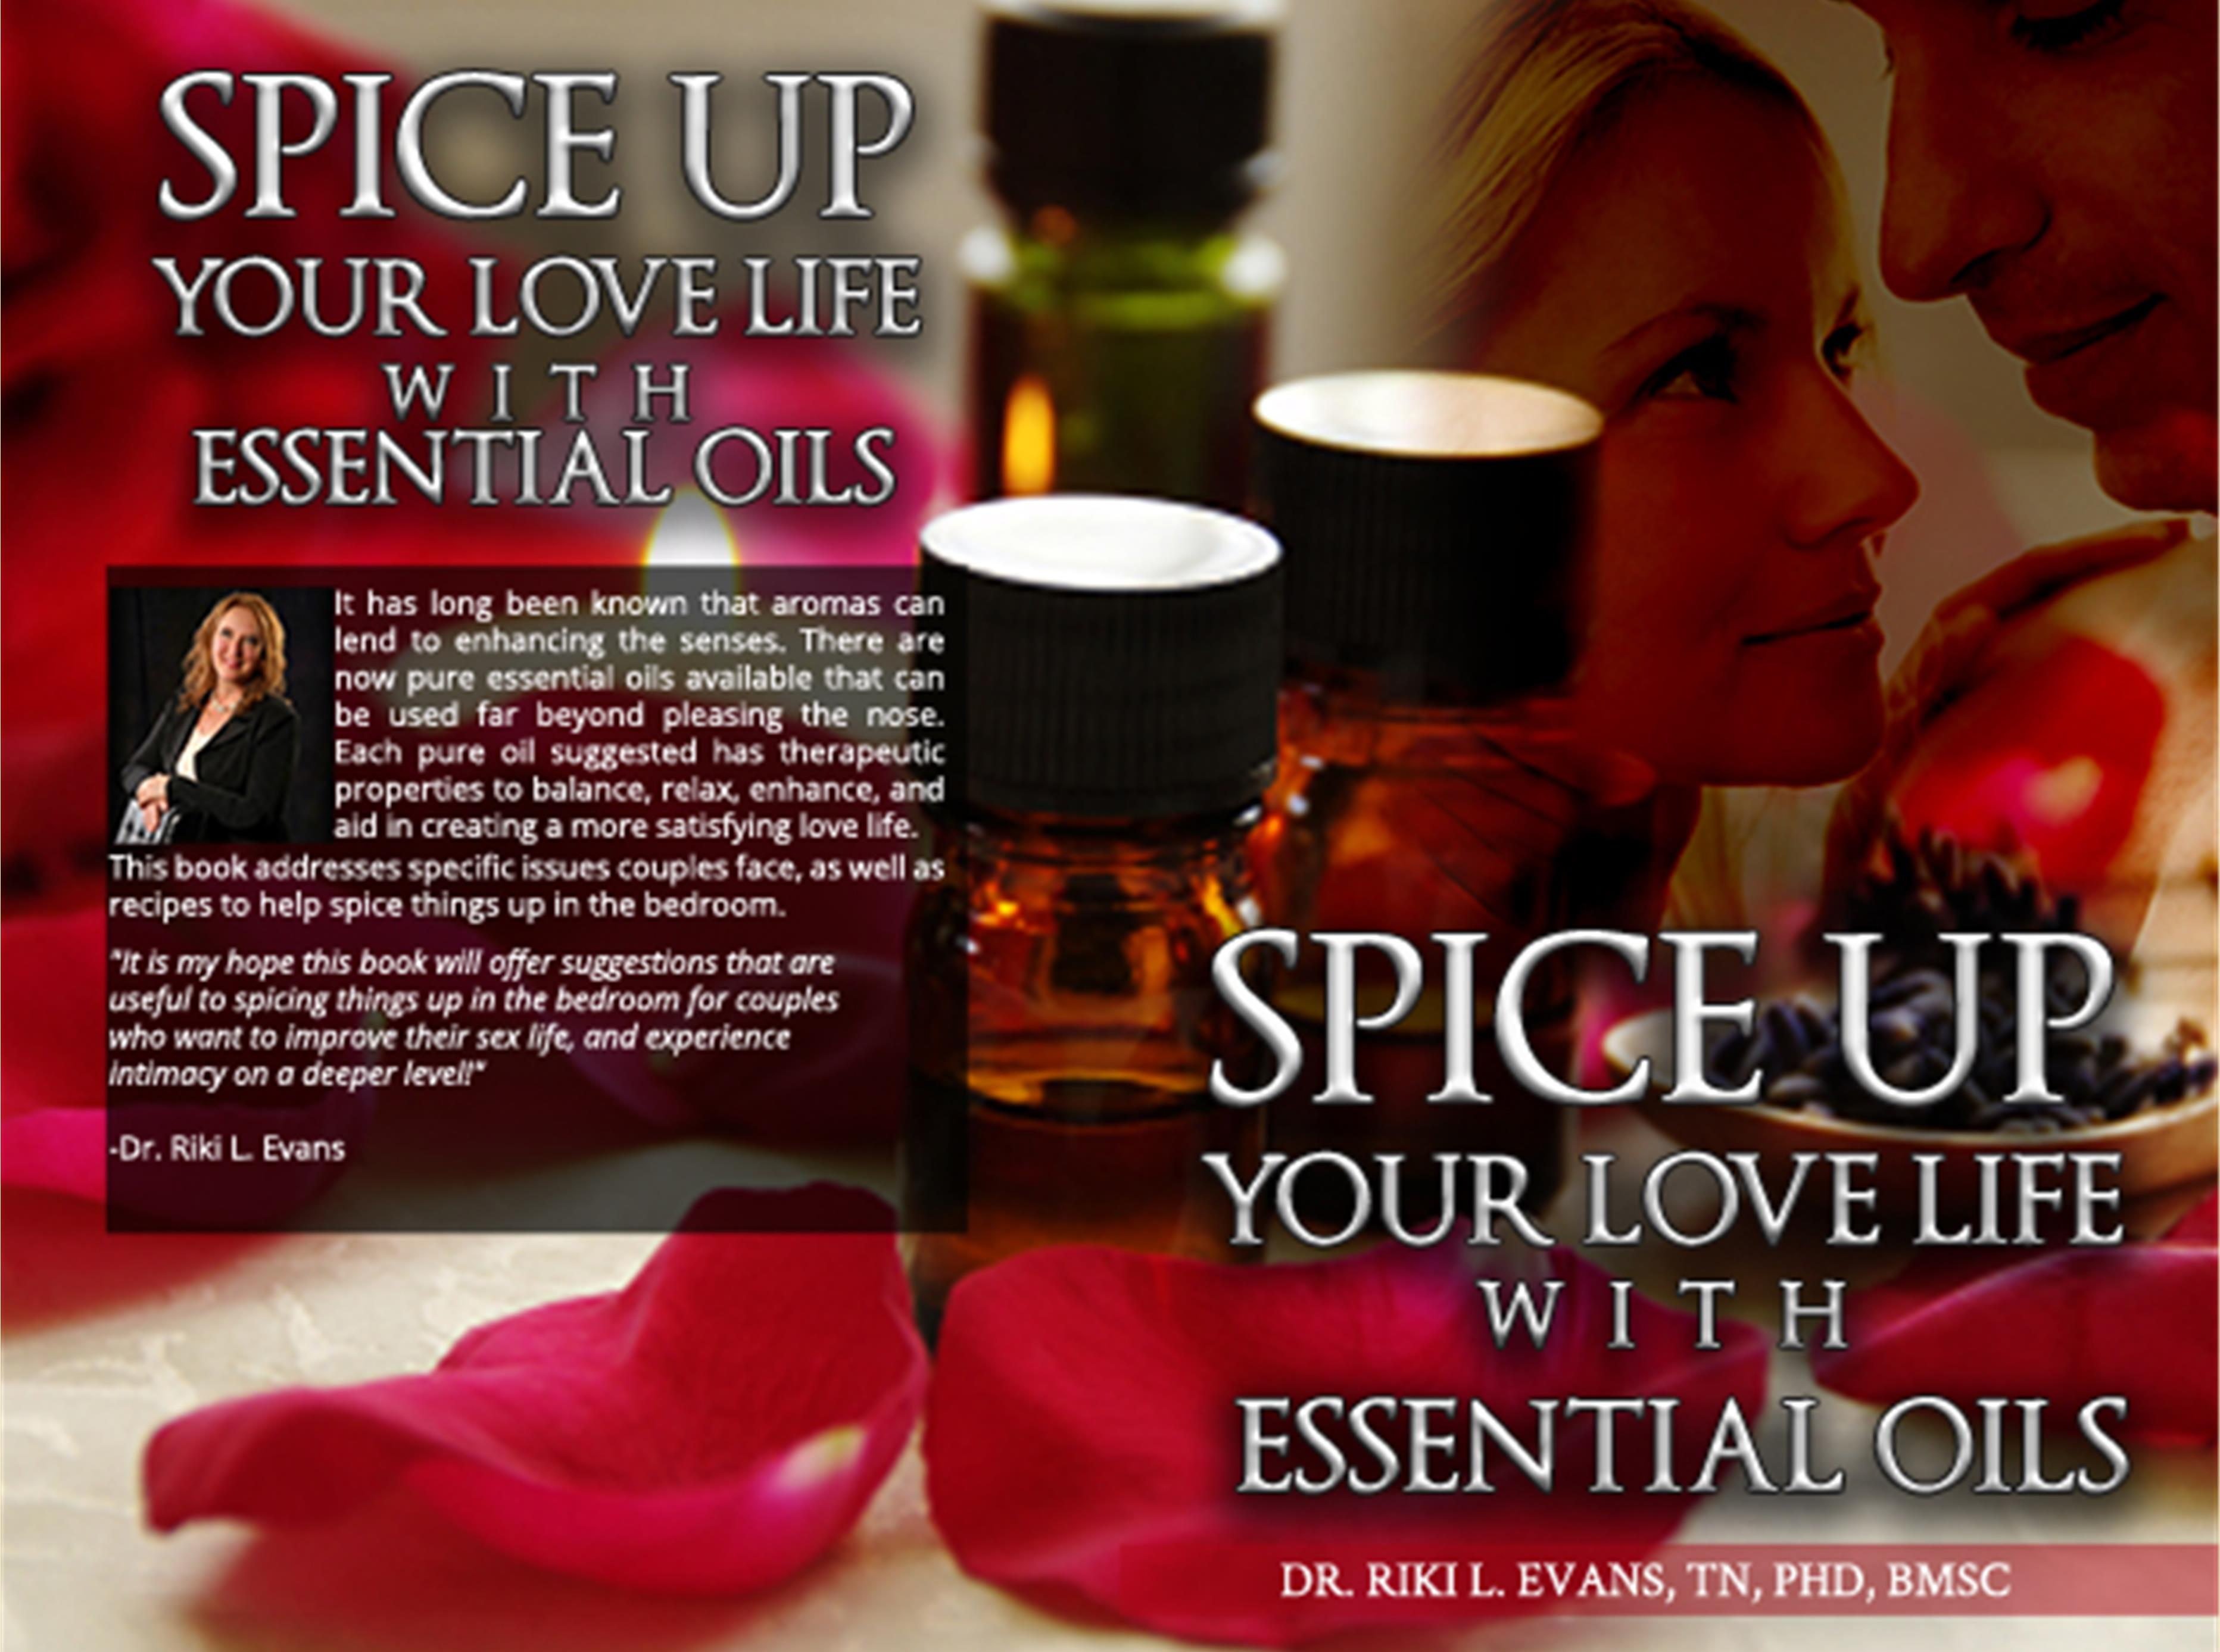 Spice Up Your Love Life With Essential Oils, Full Color Version cover image